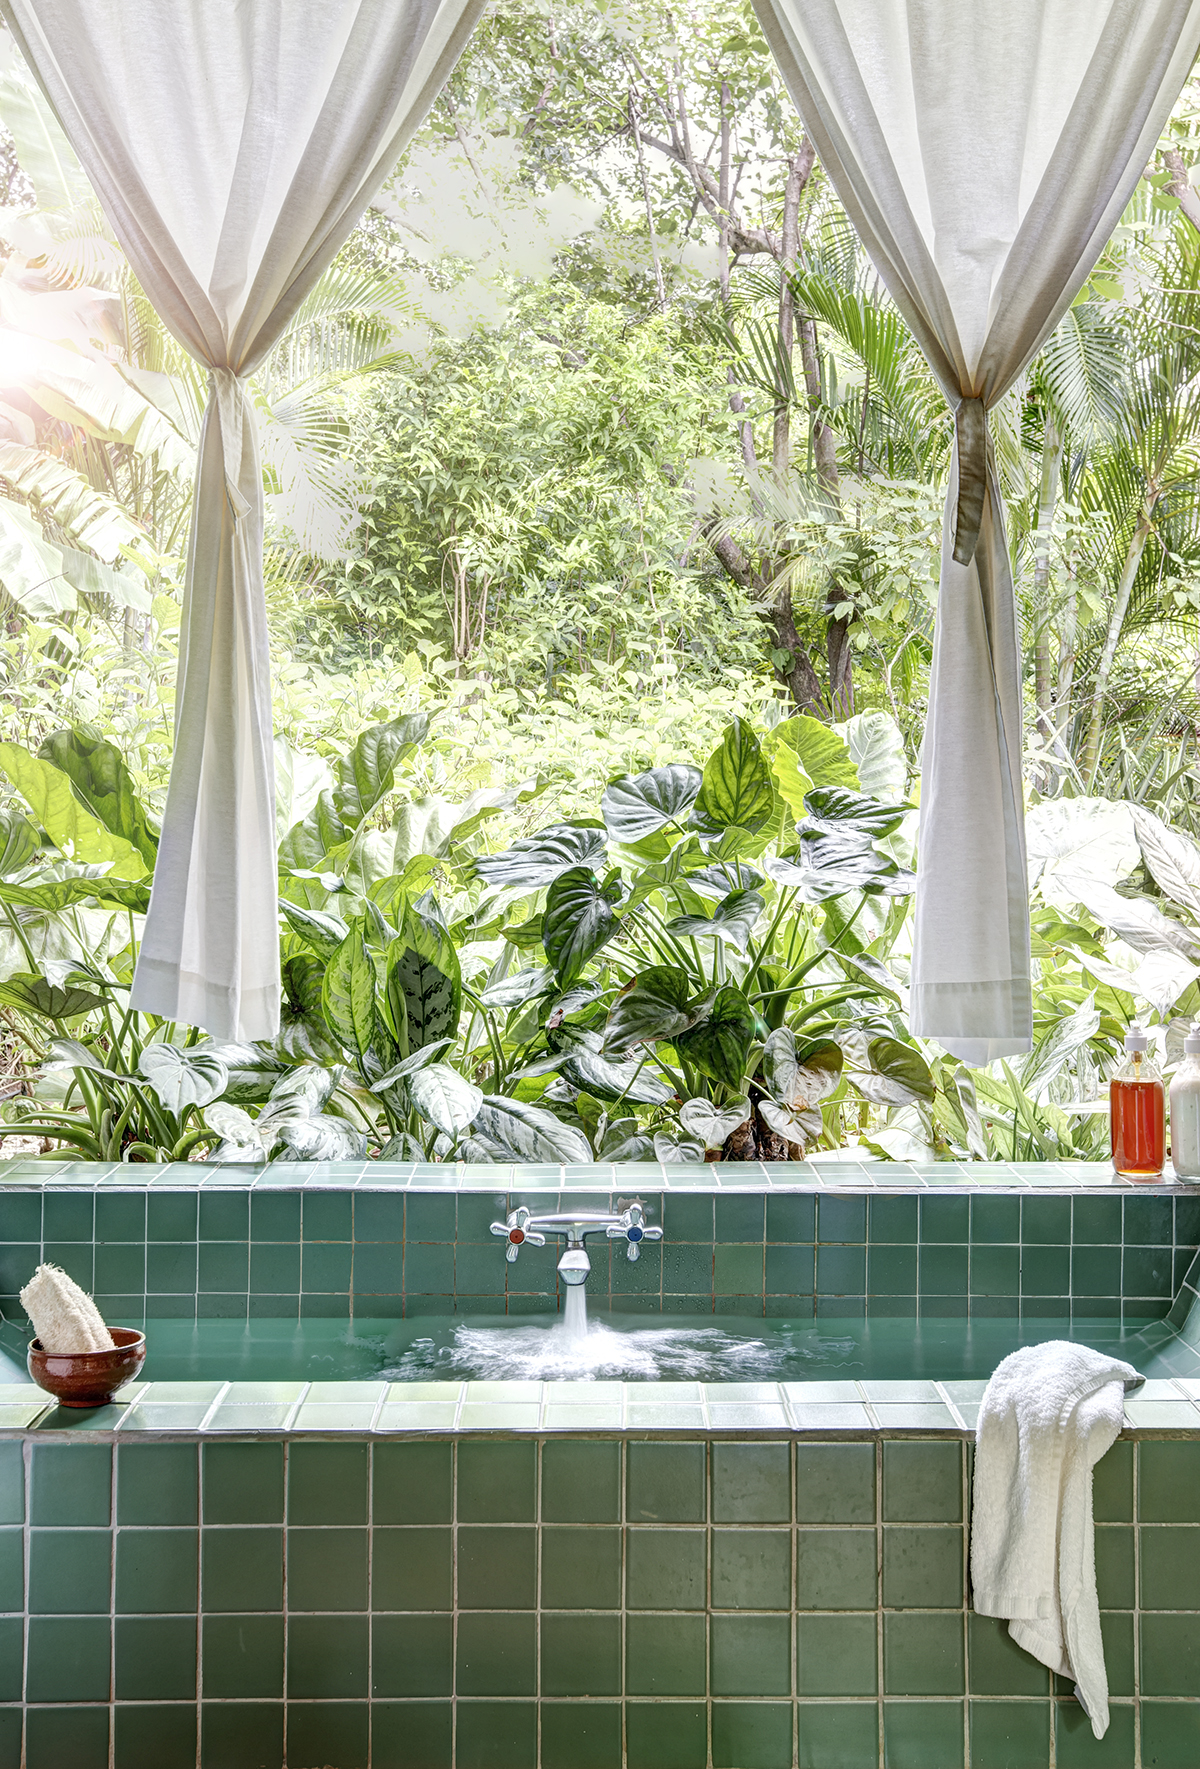 South_America_Costa_Rica_Nosara_Harmony_Hotel_Bathroom.jpg